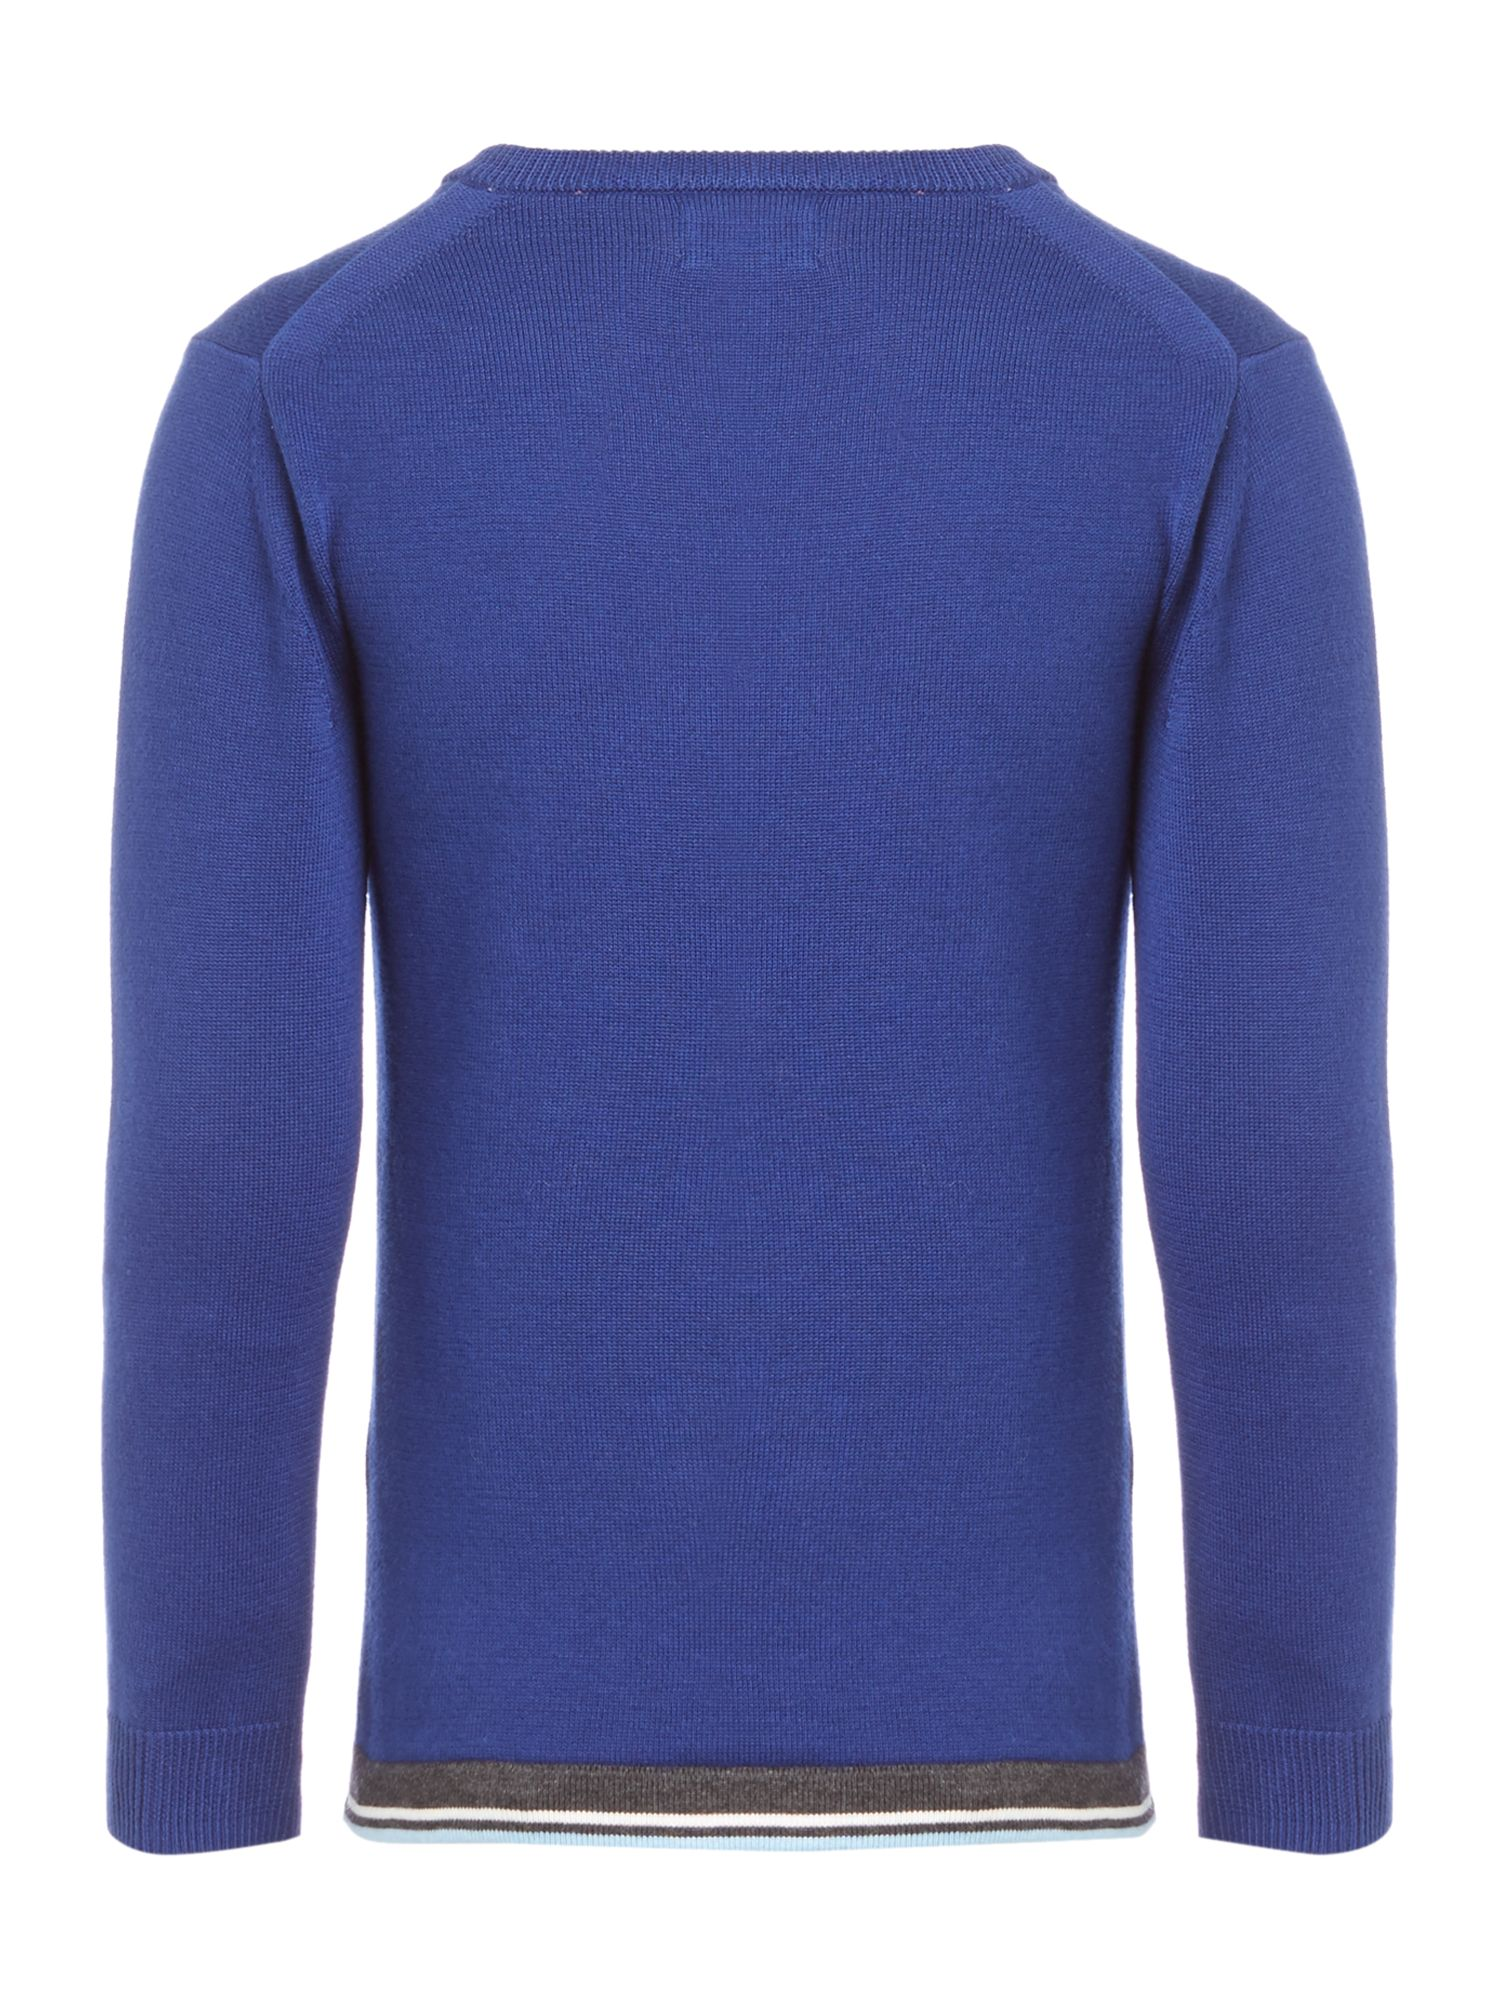 Tipped hem crew neck classic jumper